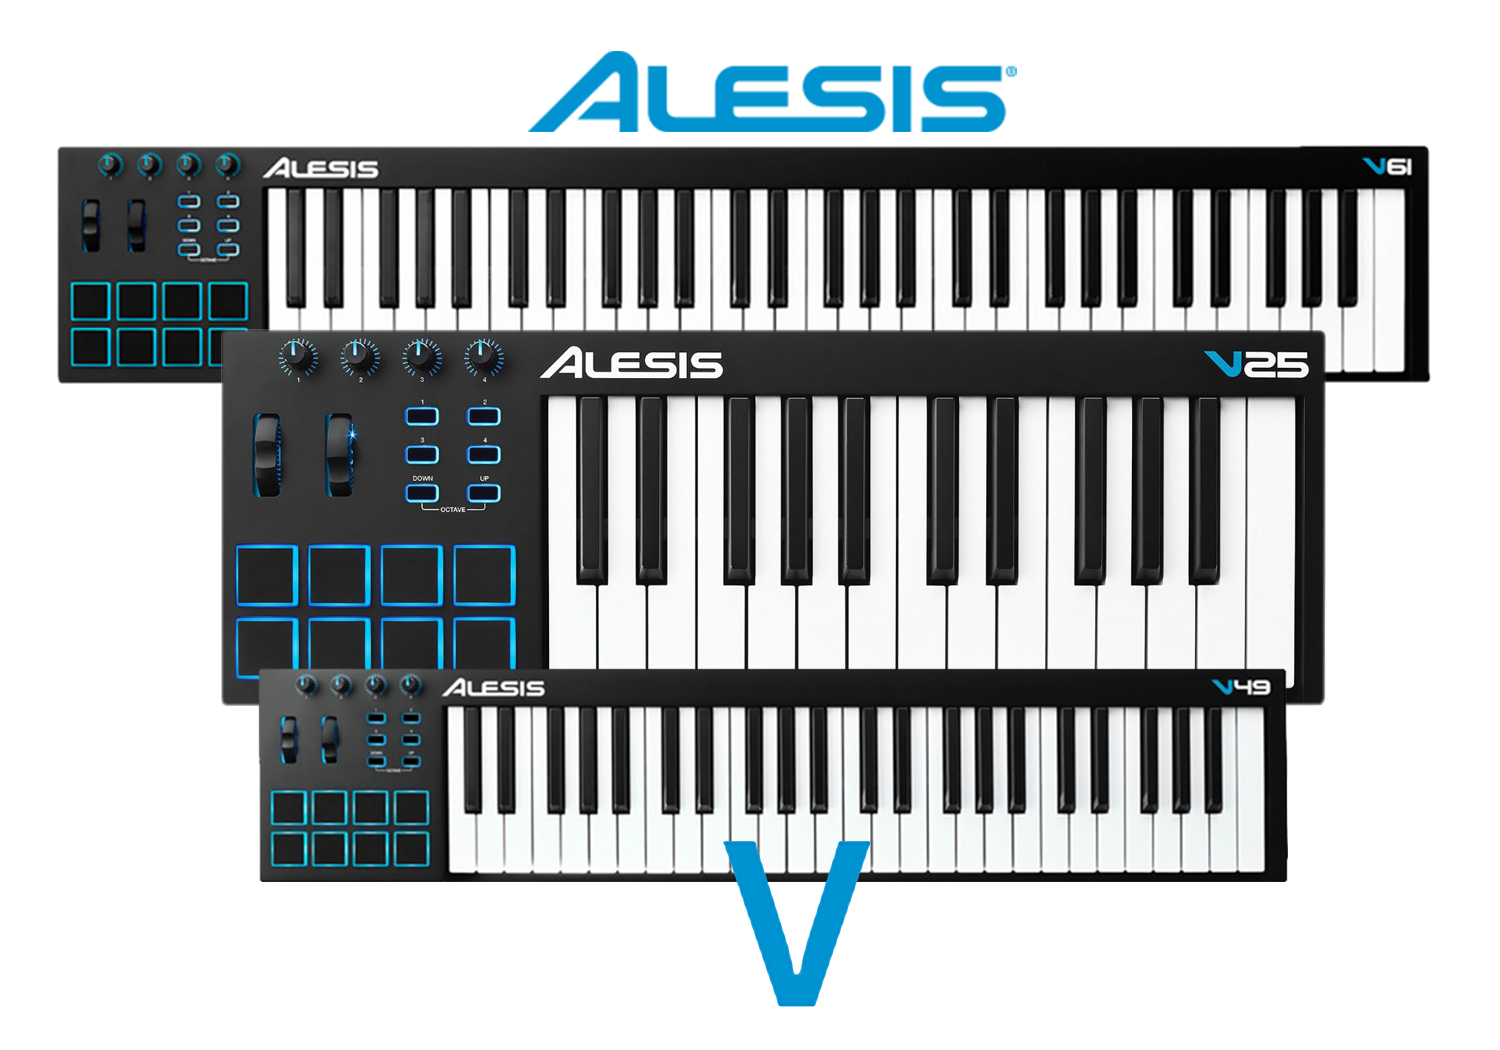 alesis vseries main